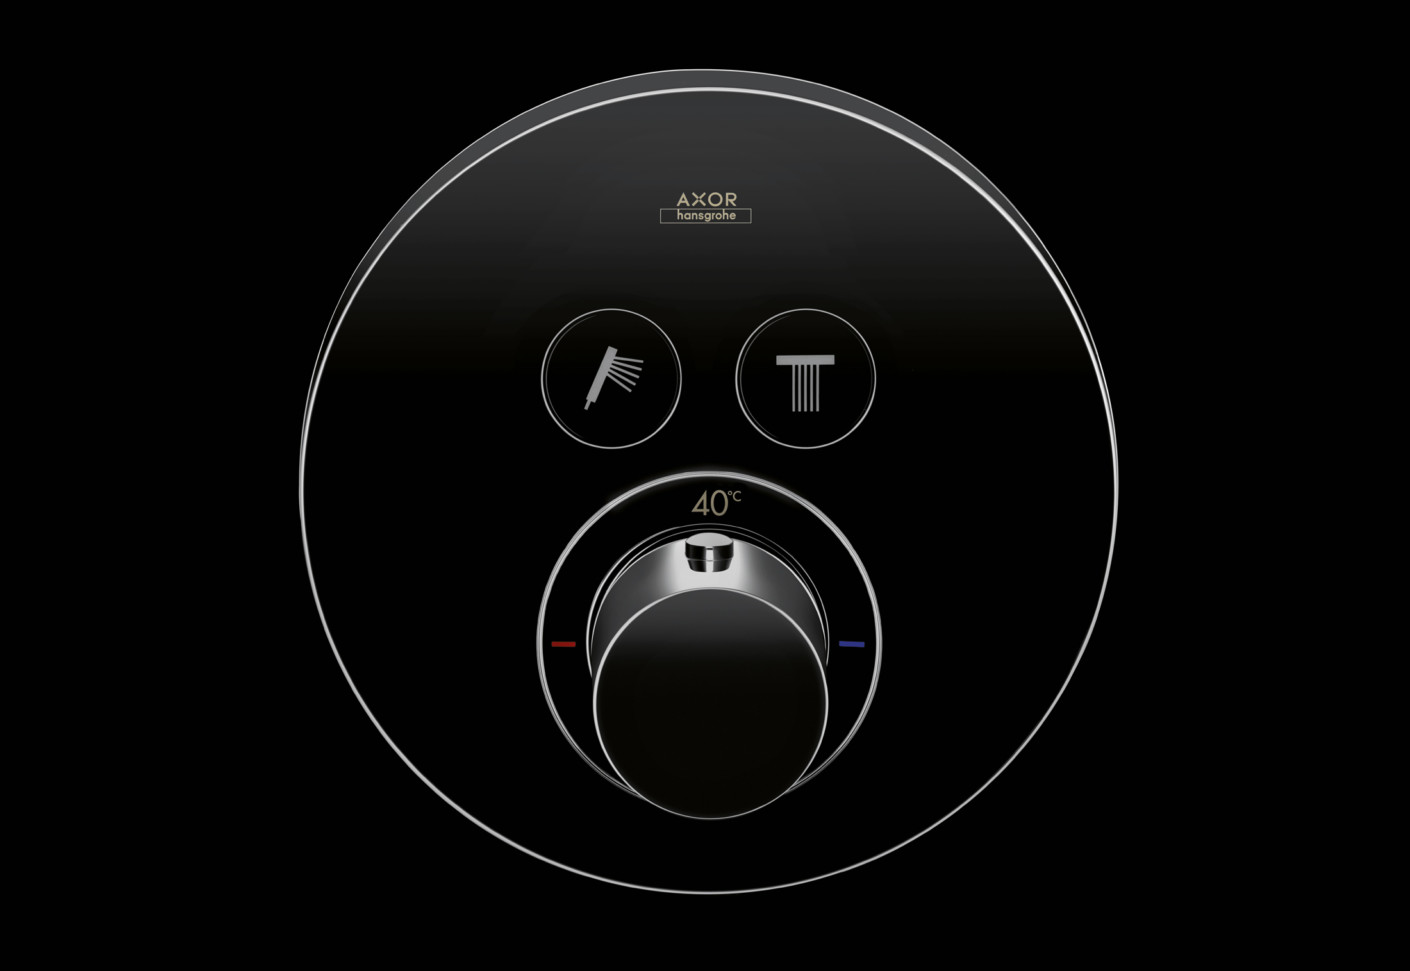 axor shower select thermostat